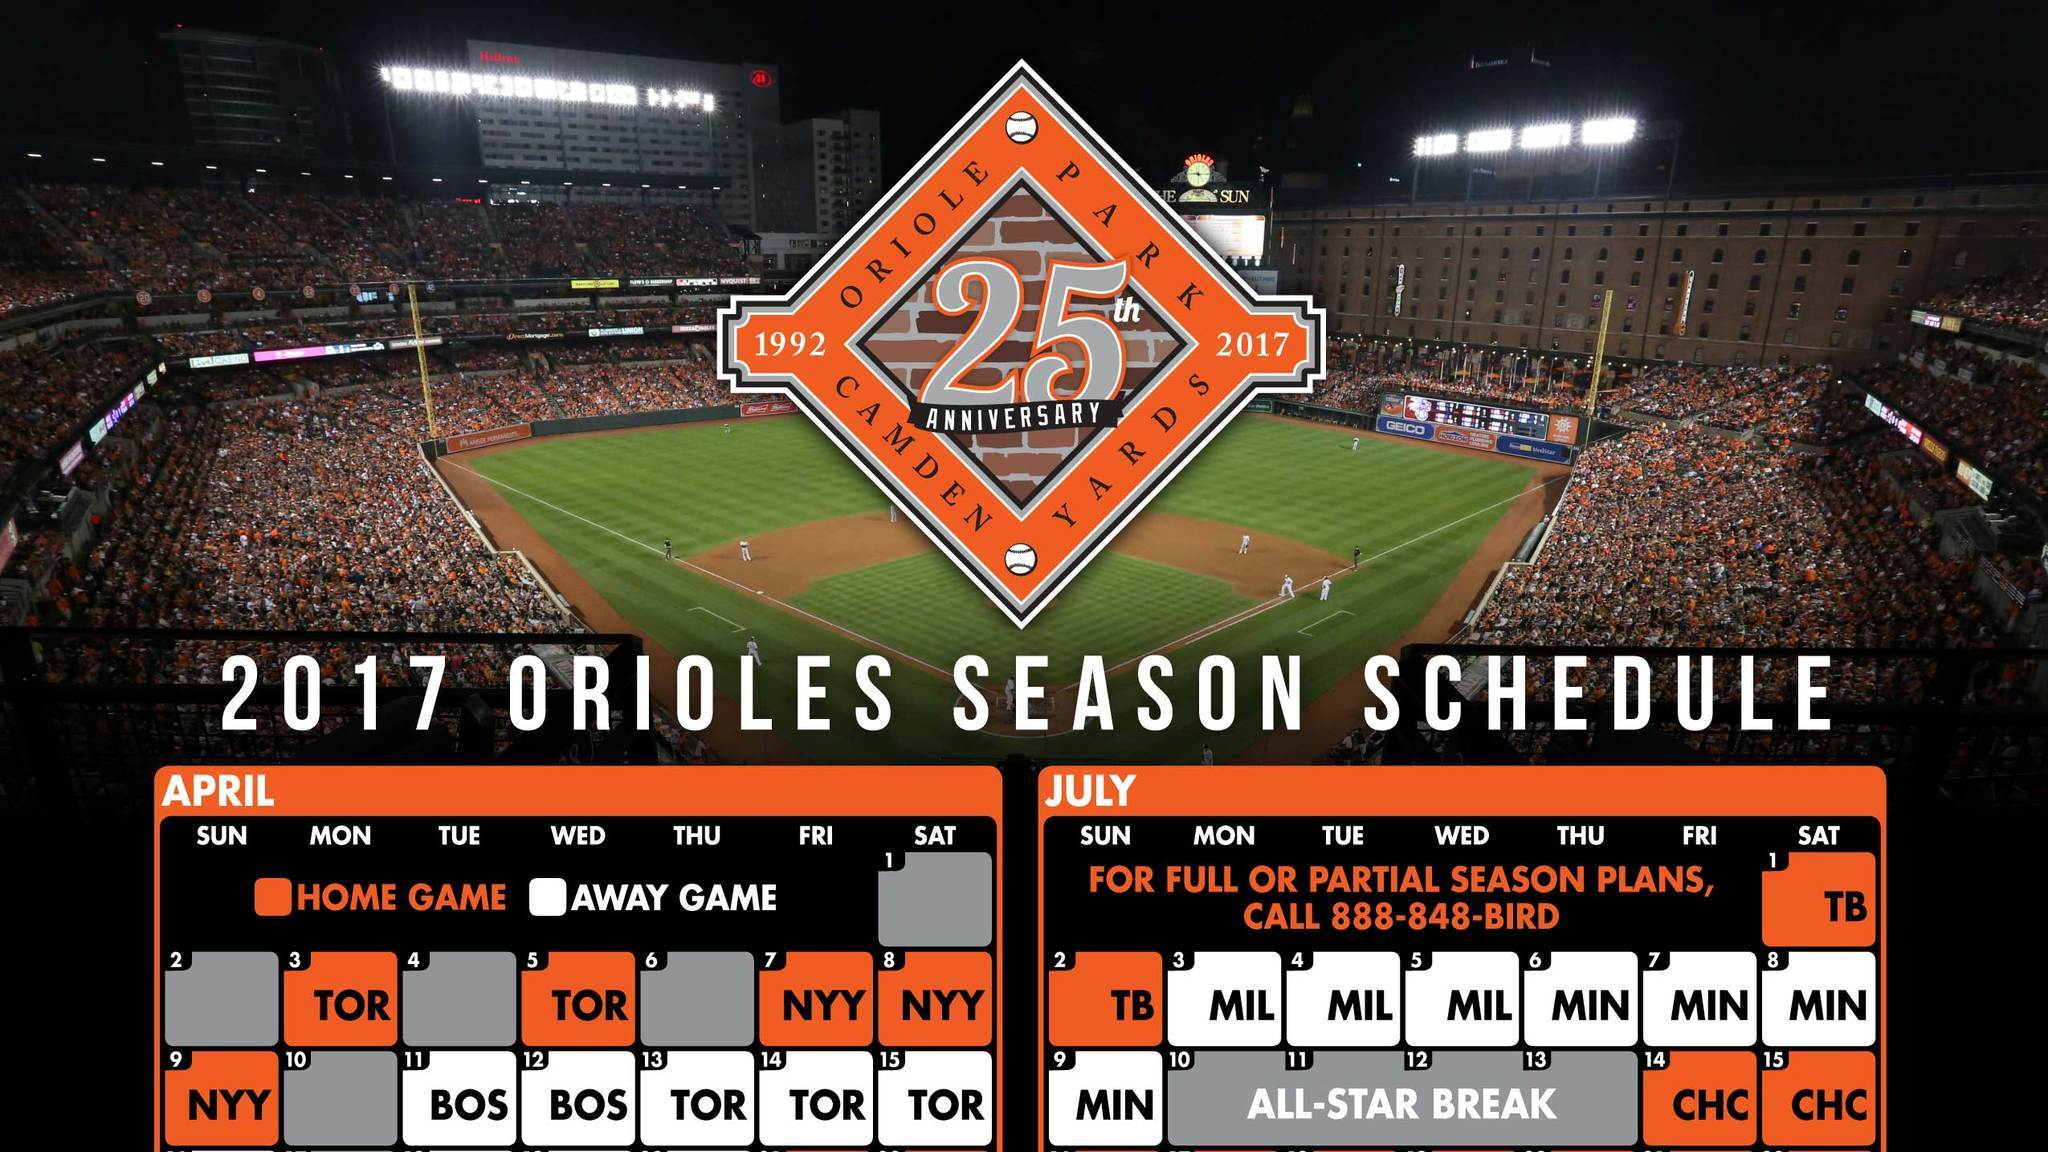 photograph relating to Orioles Printable Schedule referred to as Orioles 2017 routine - Baltimore Sunshine